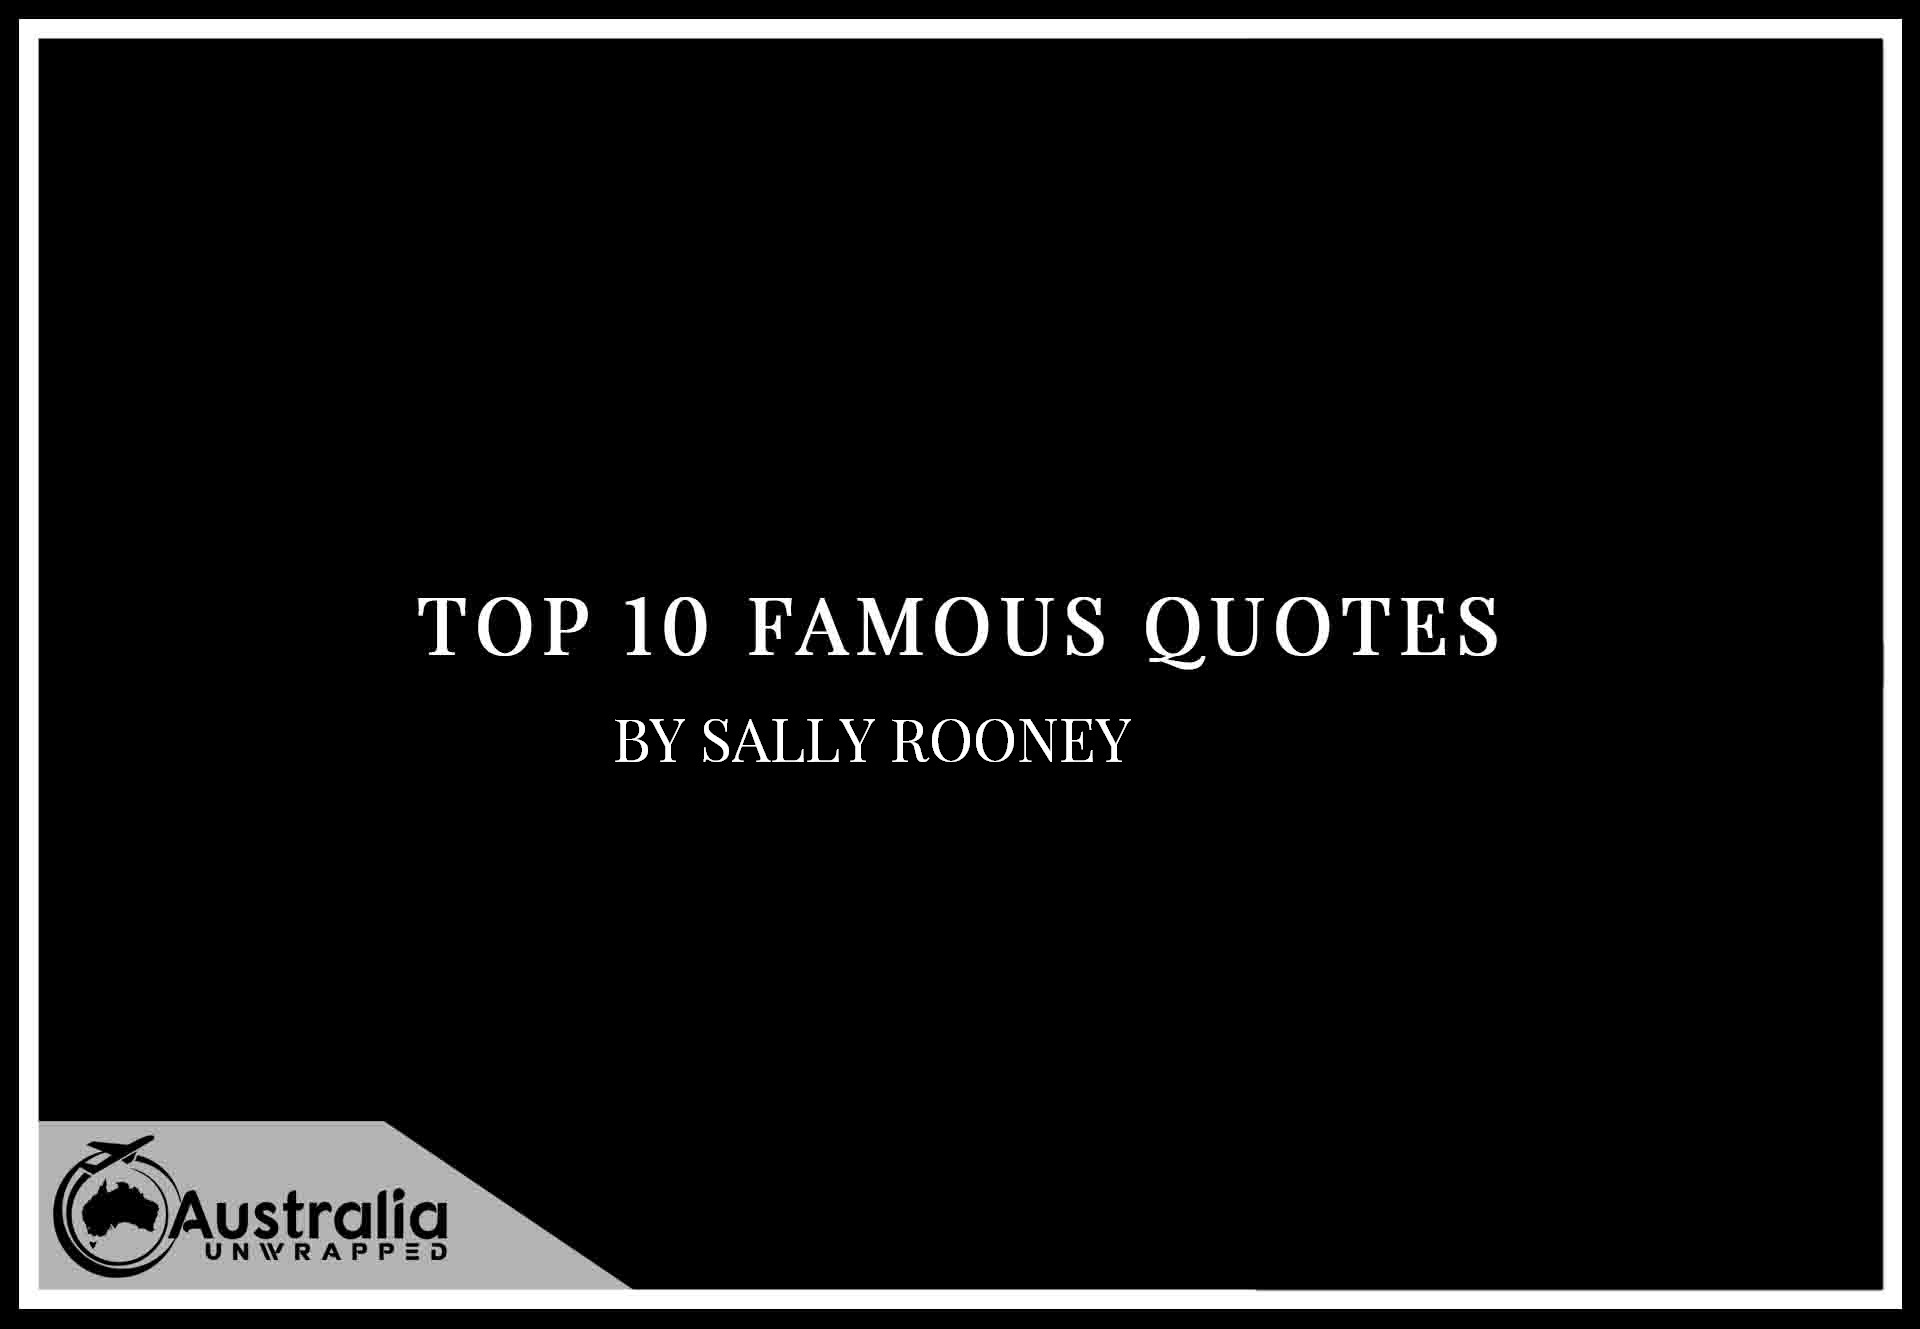 Top 10 Famous Quotes by Author Sally Rooney